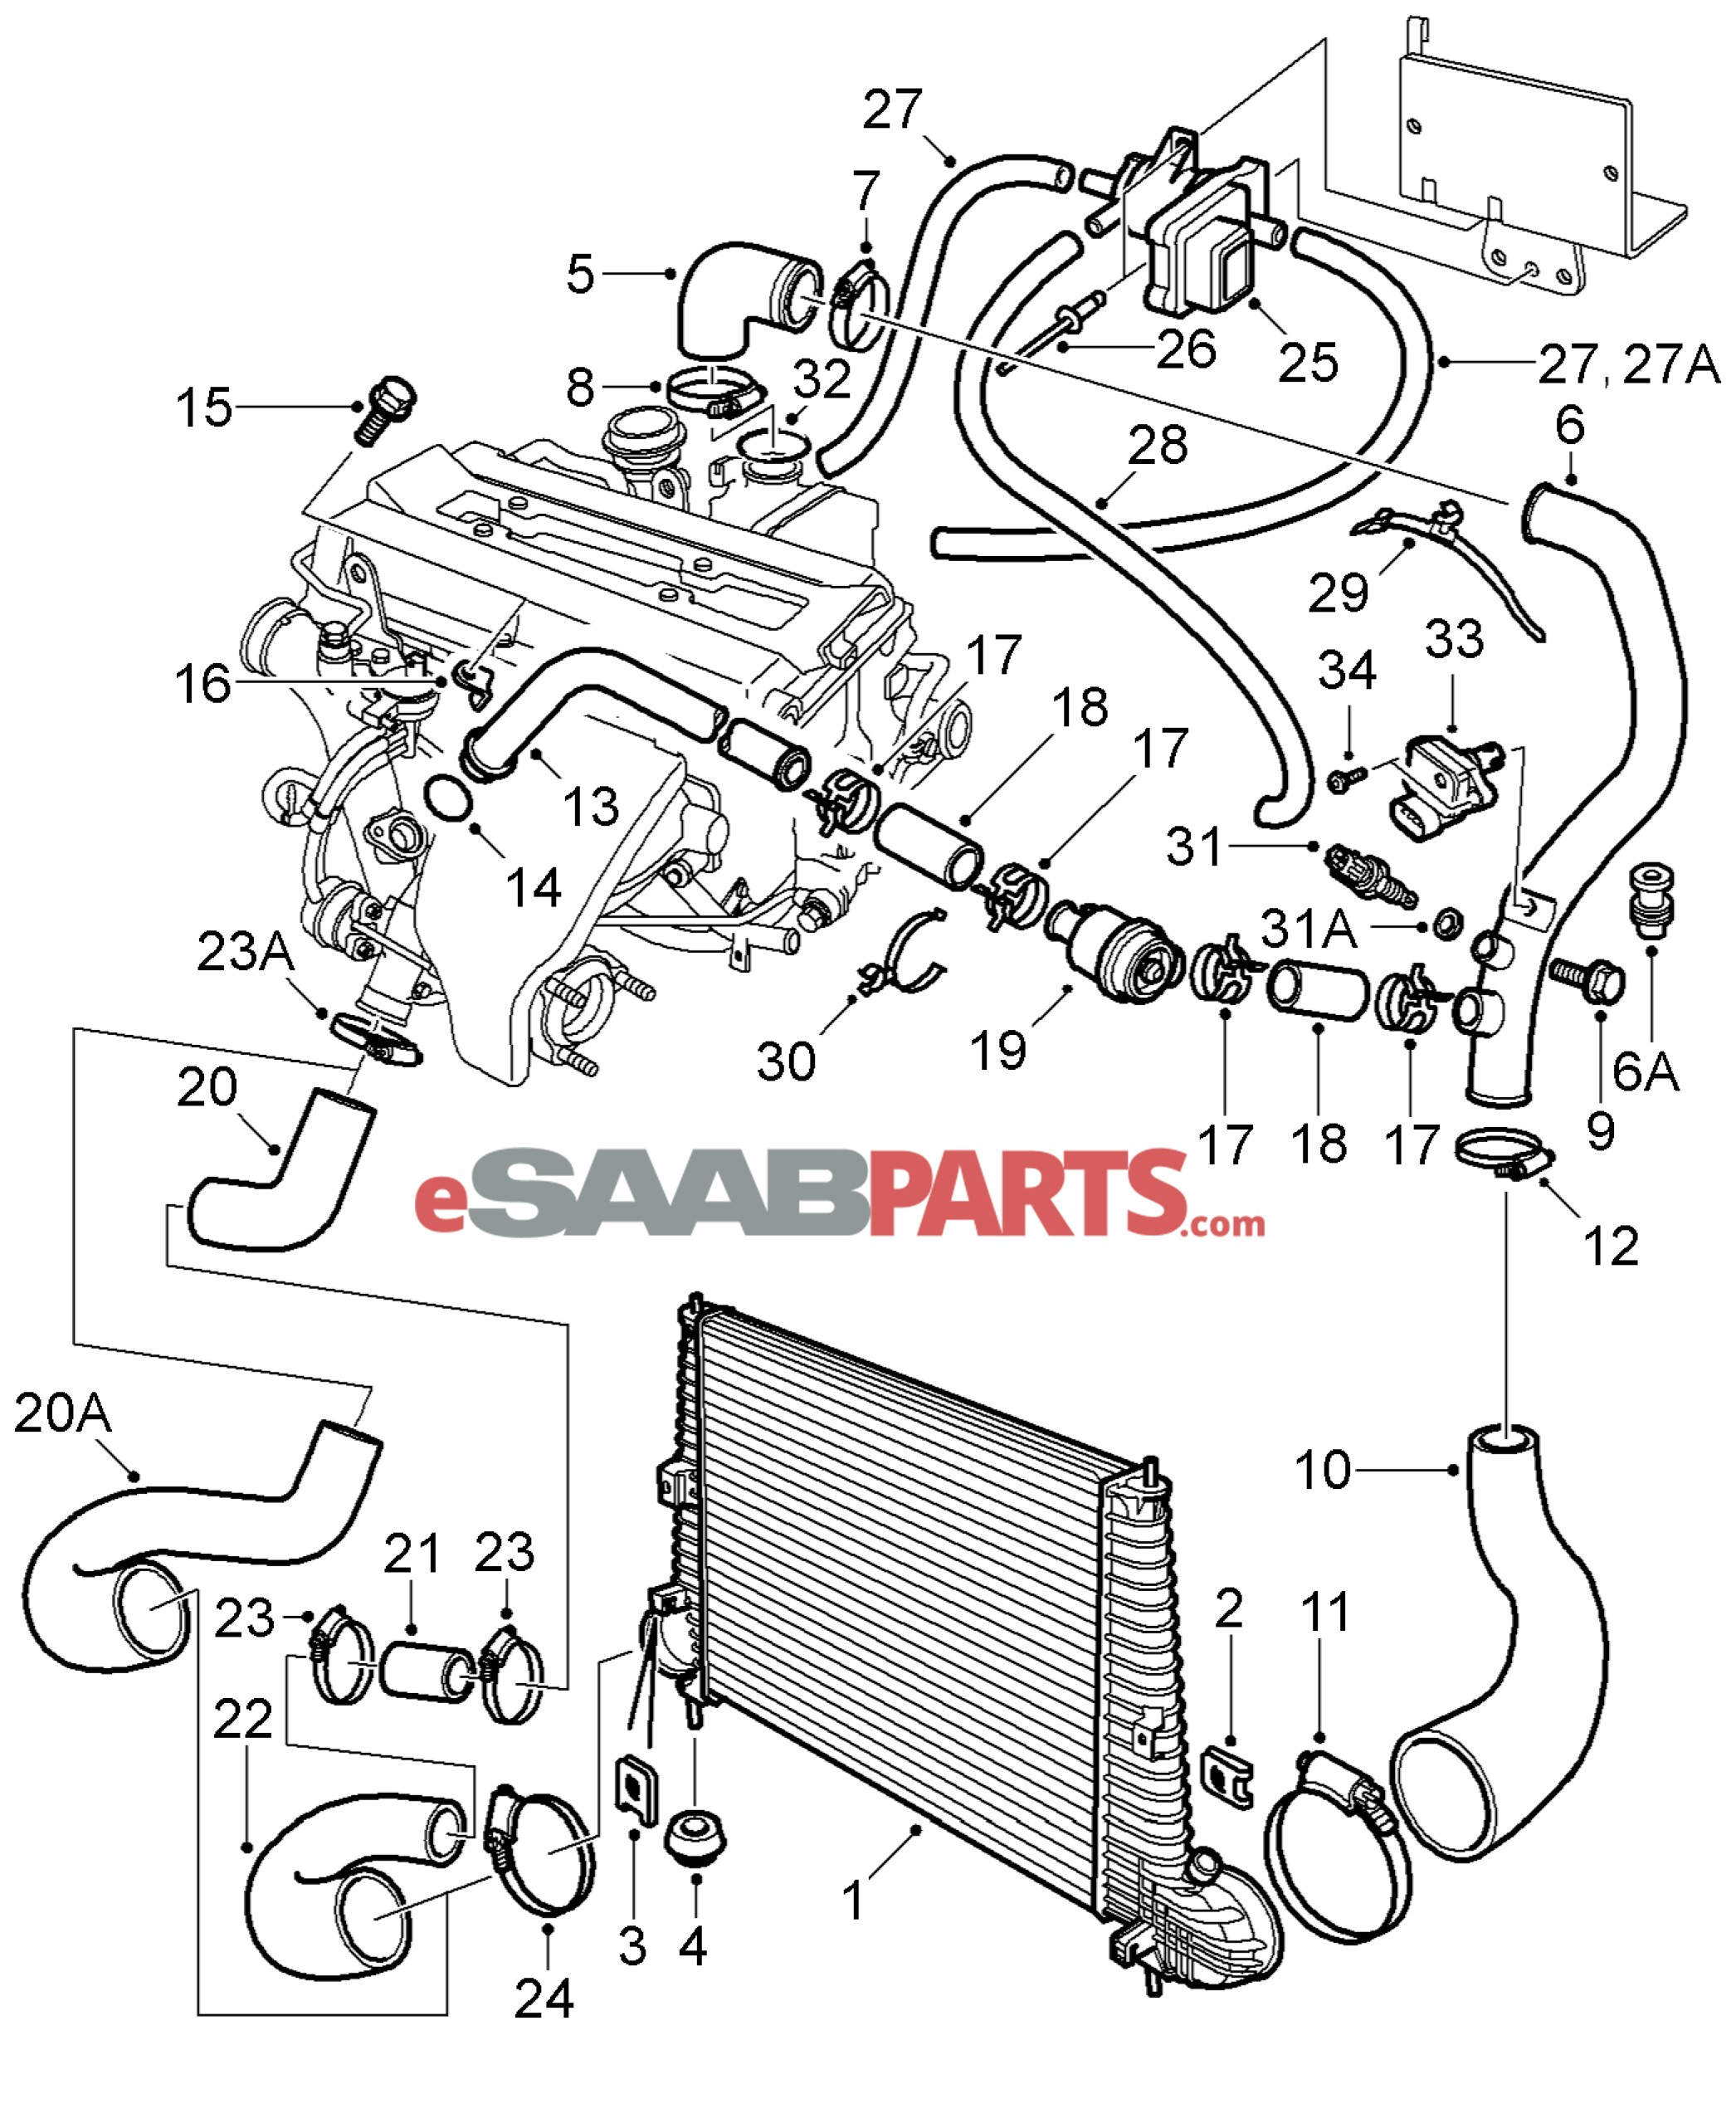 2003 Pontiac Grand Am 3 4 Engine Diagram Data Wiring Diagrams 70 Chevelle Ss Fuse Box For You All Front Rh Scoala Co 1999 Prix 2007